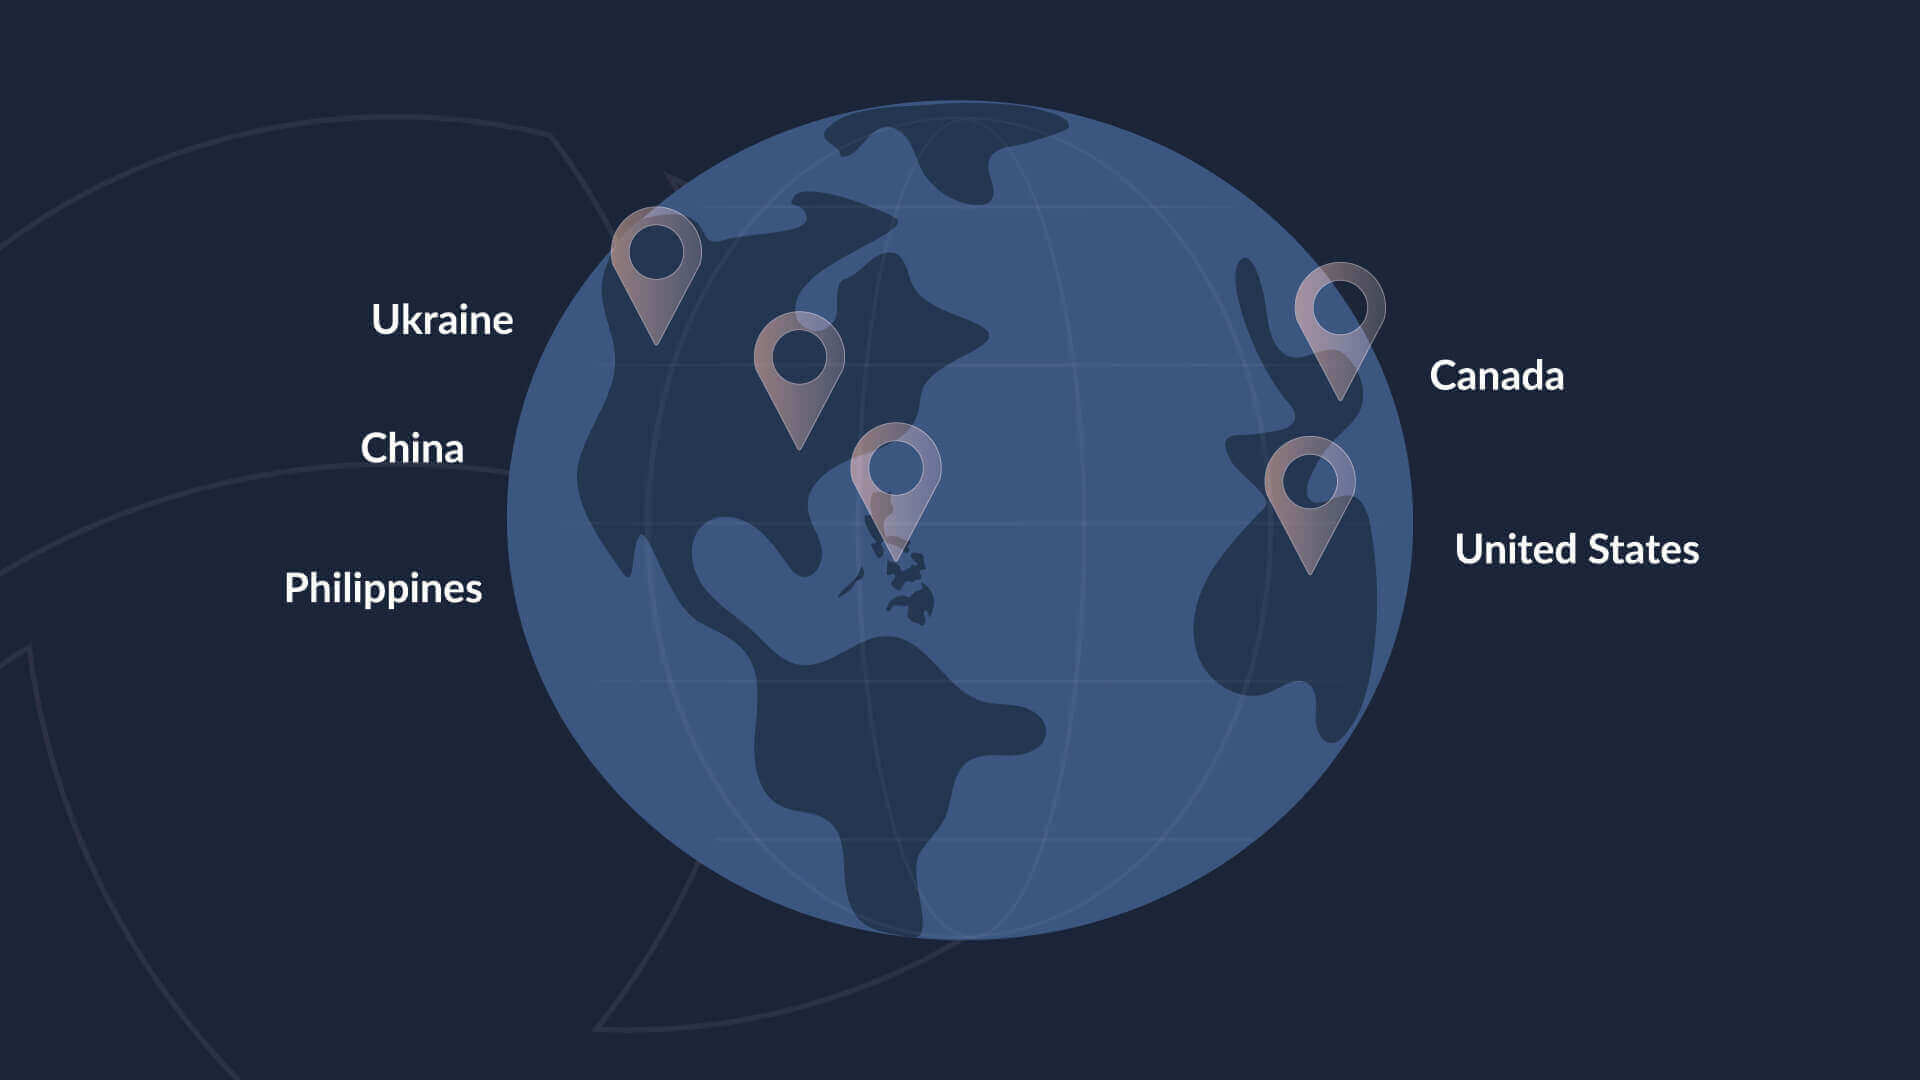 Map of the globe with pin points in Ukraine, China, the Philippines, Canada, and the US. This is where our team is located.